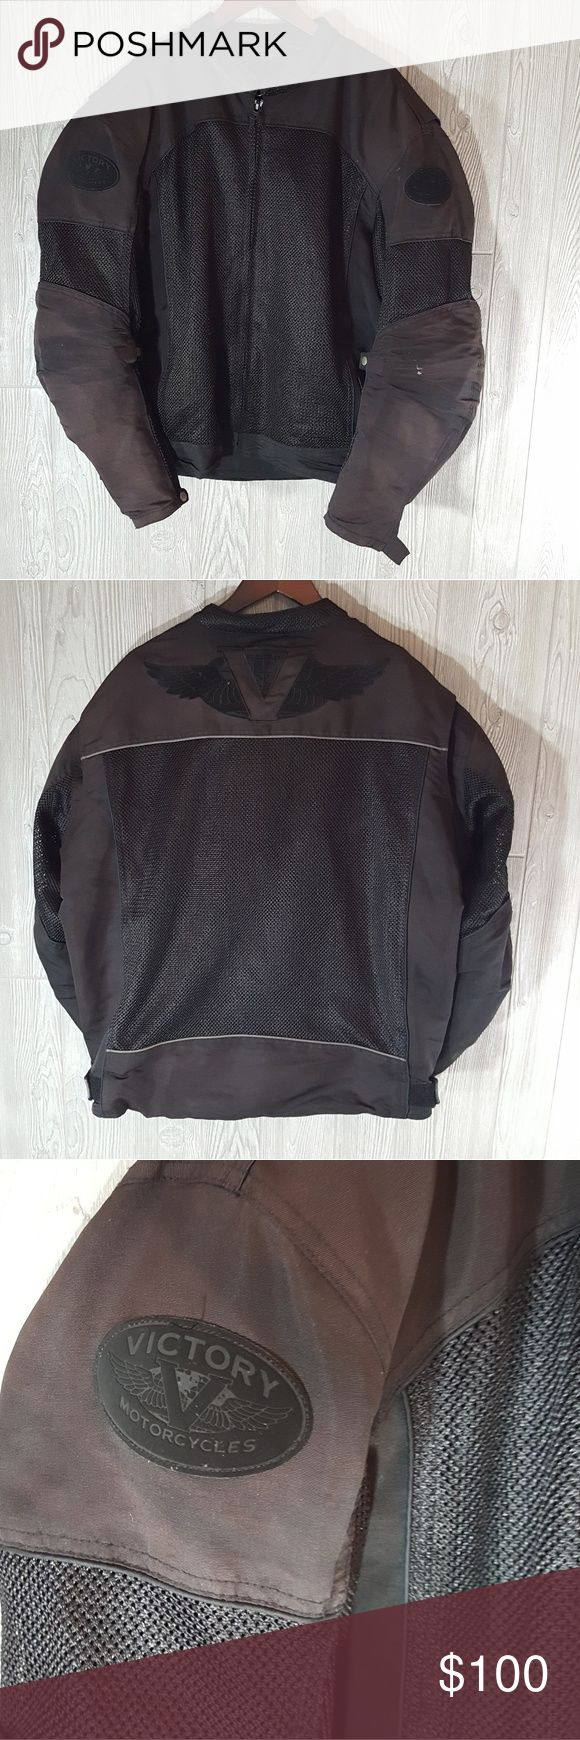 2xl Pure victory motorcycle summer jacket w armour Very good used condition summer mesh breathable jacket for motorcycles. Built-in foam armor to protect yourself from road rash. Some minor signs of wear but overall fantastic condition size 2XL pure victory Jackets & Coats Performance Jackets